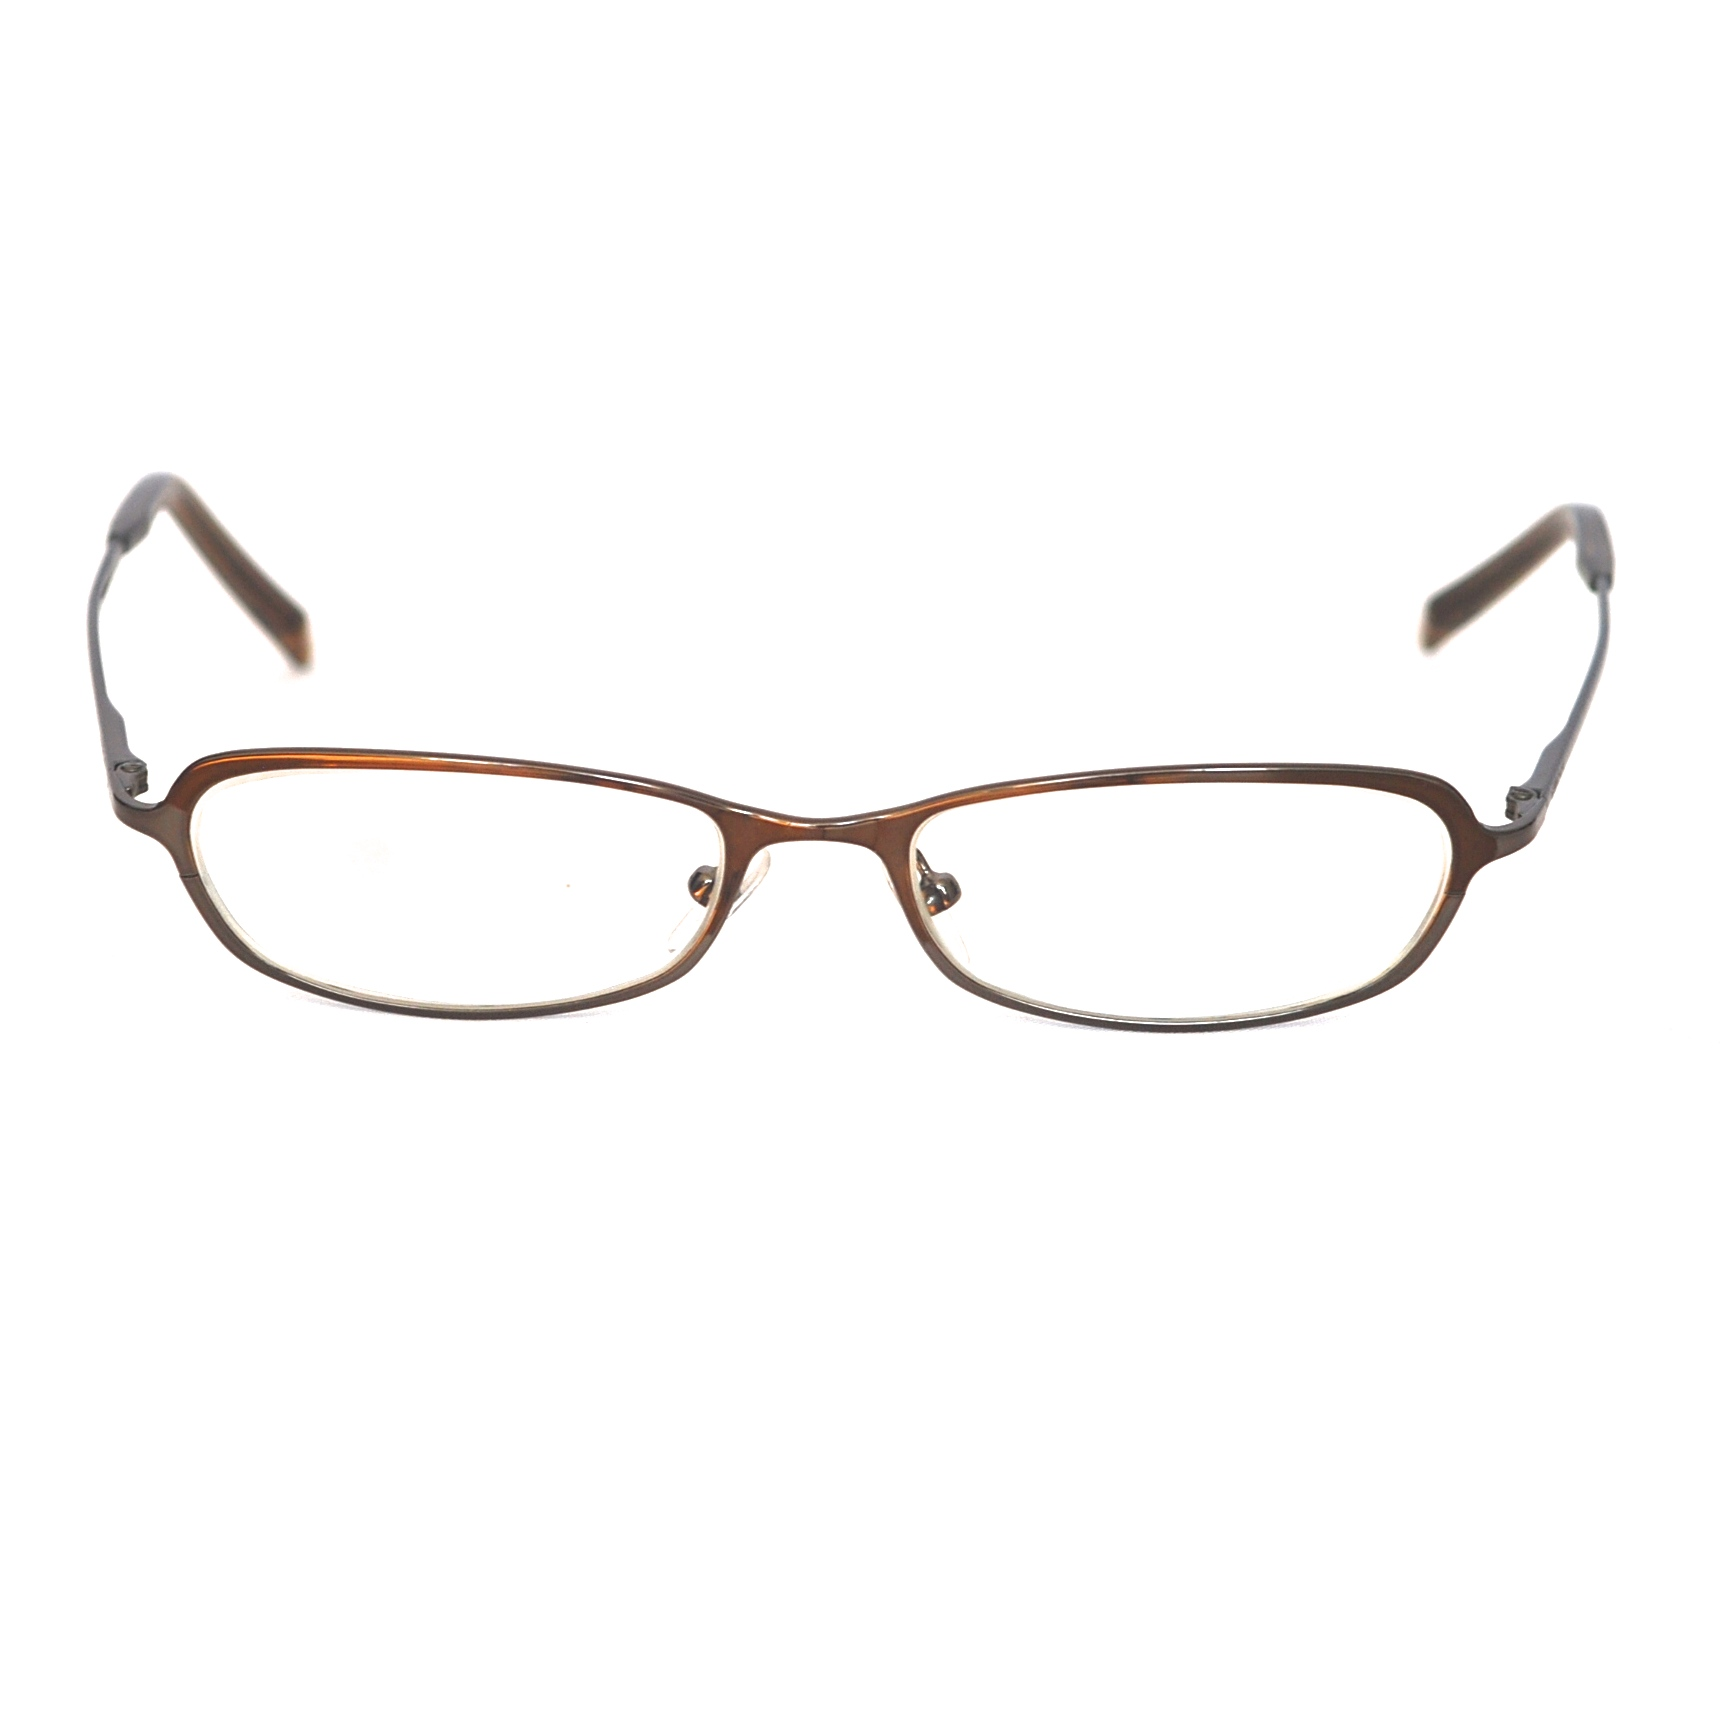 e632d96d8b035 Gucci Eyeglass Frames In A Dark Metal With A Hint Of Bronze – Italy ...